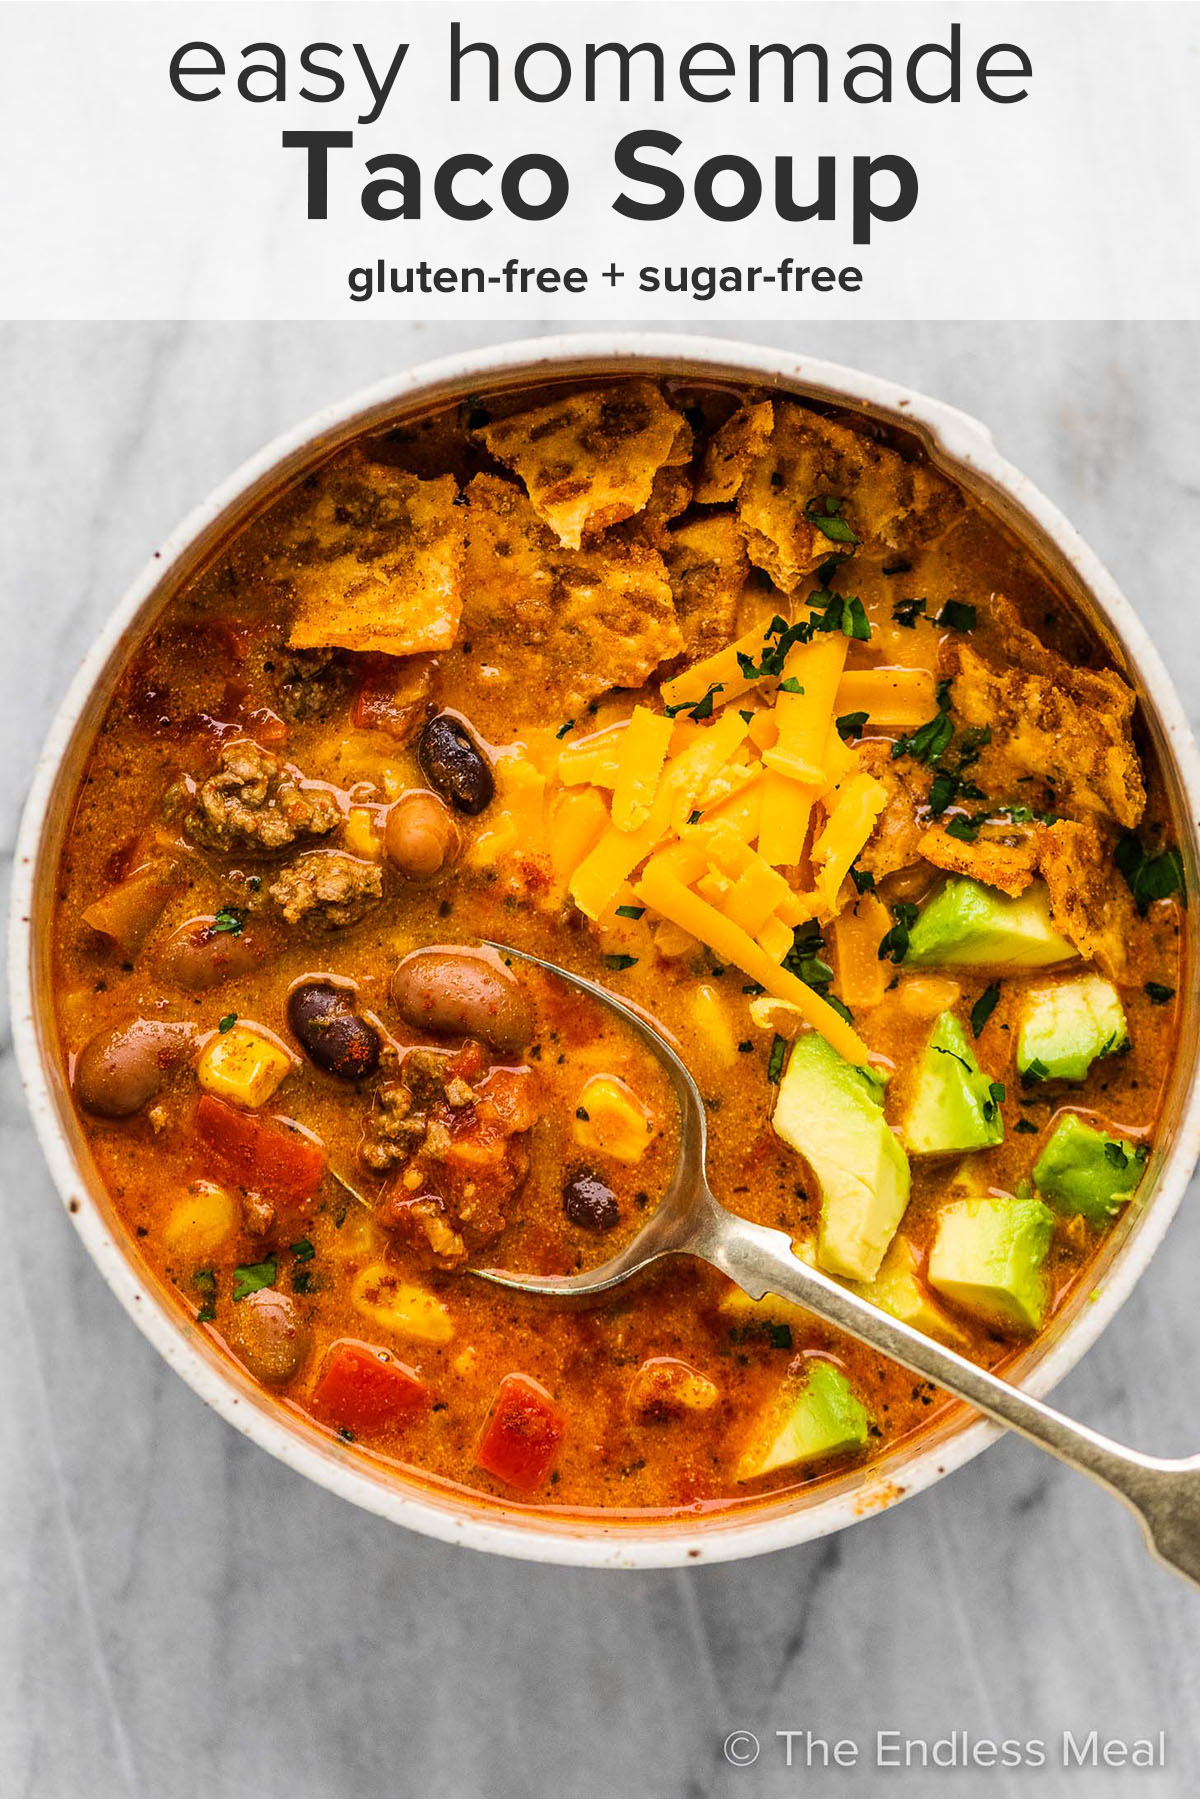 Taco soup in a bowl with a spoon and the recipe title on top of the picture.